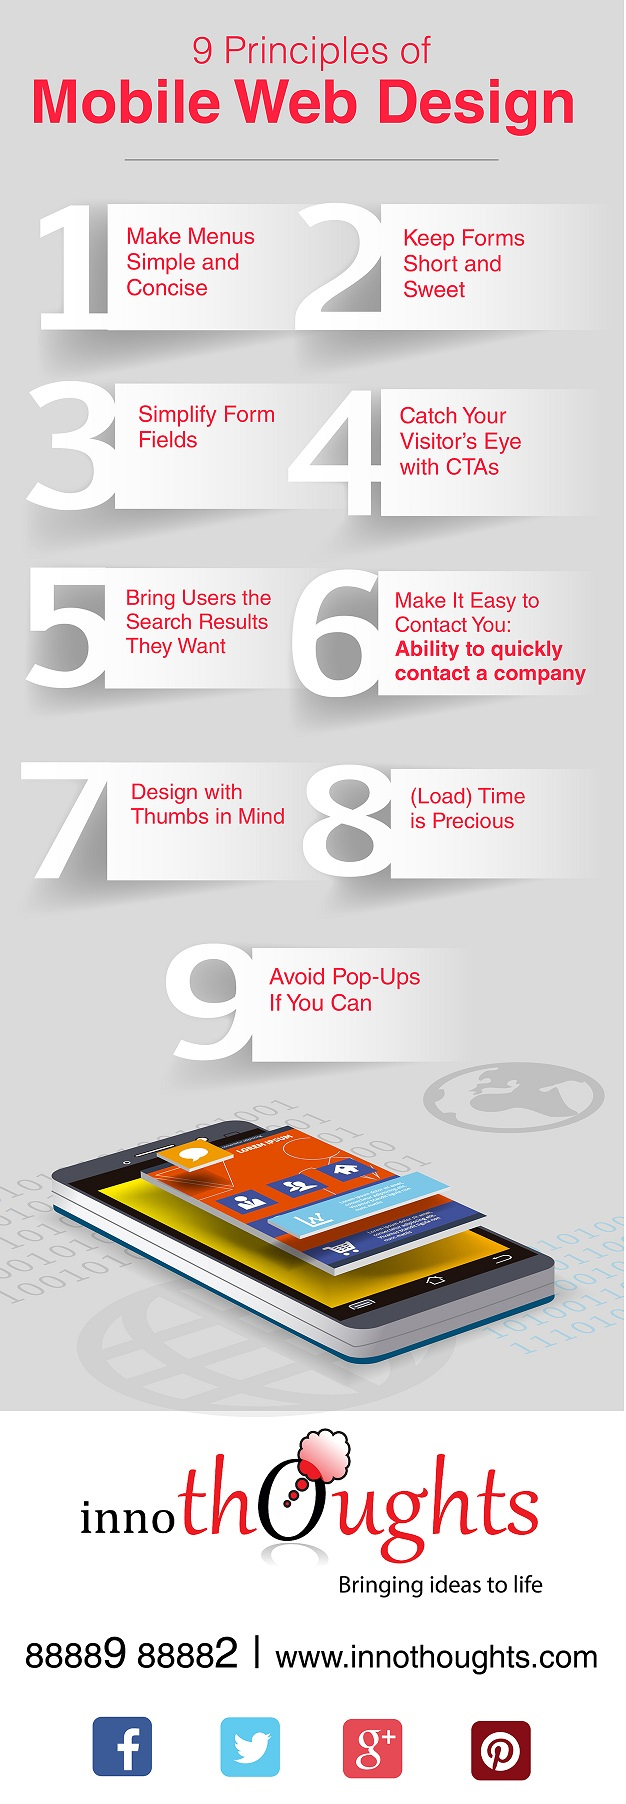 Design With Thumbs in Mind! 9 Principles for a Successful Mobile Website